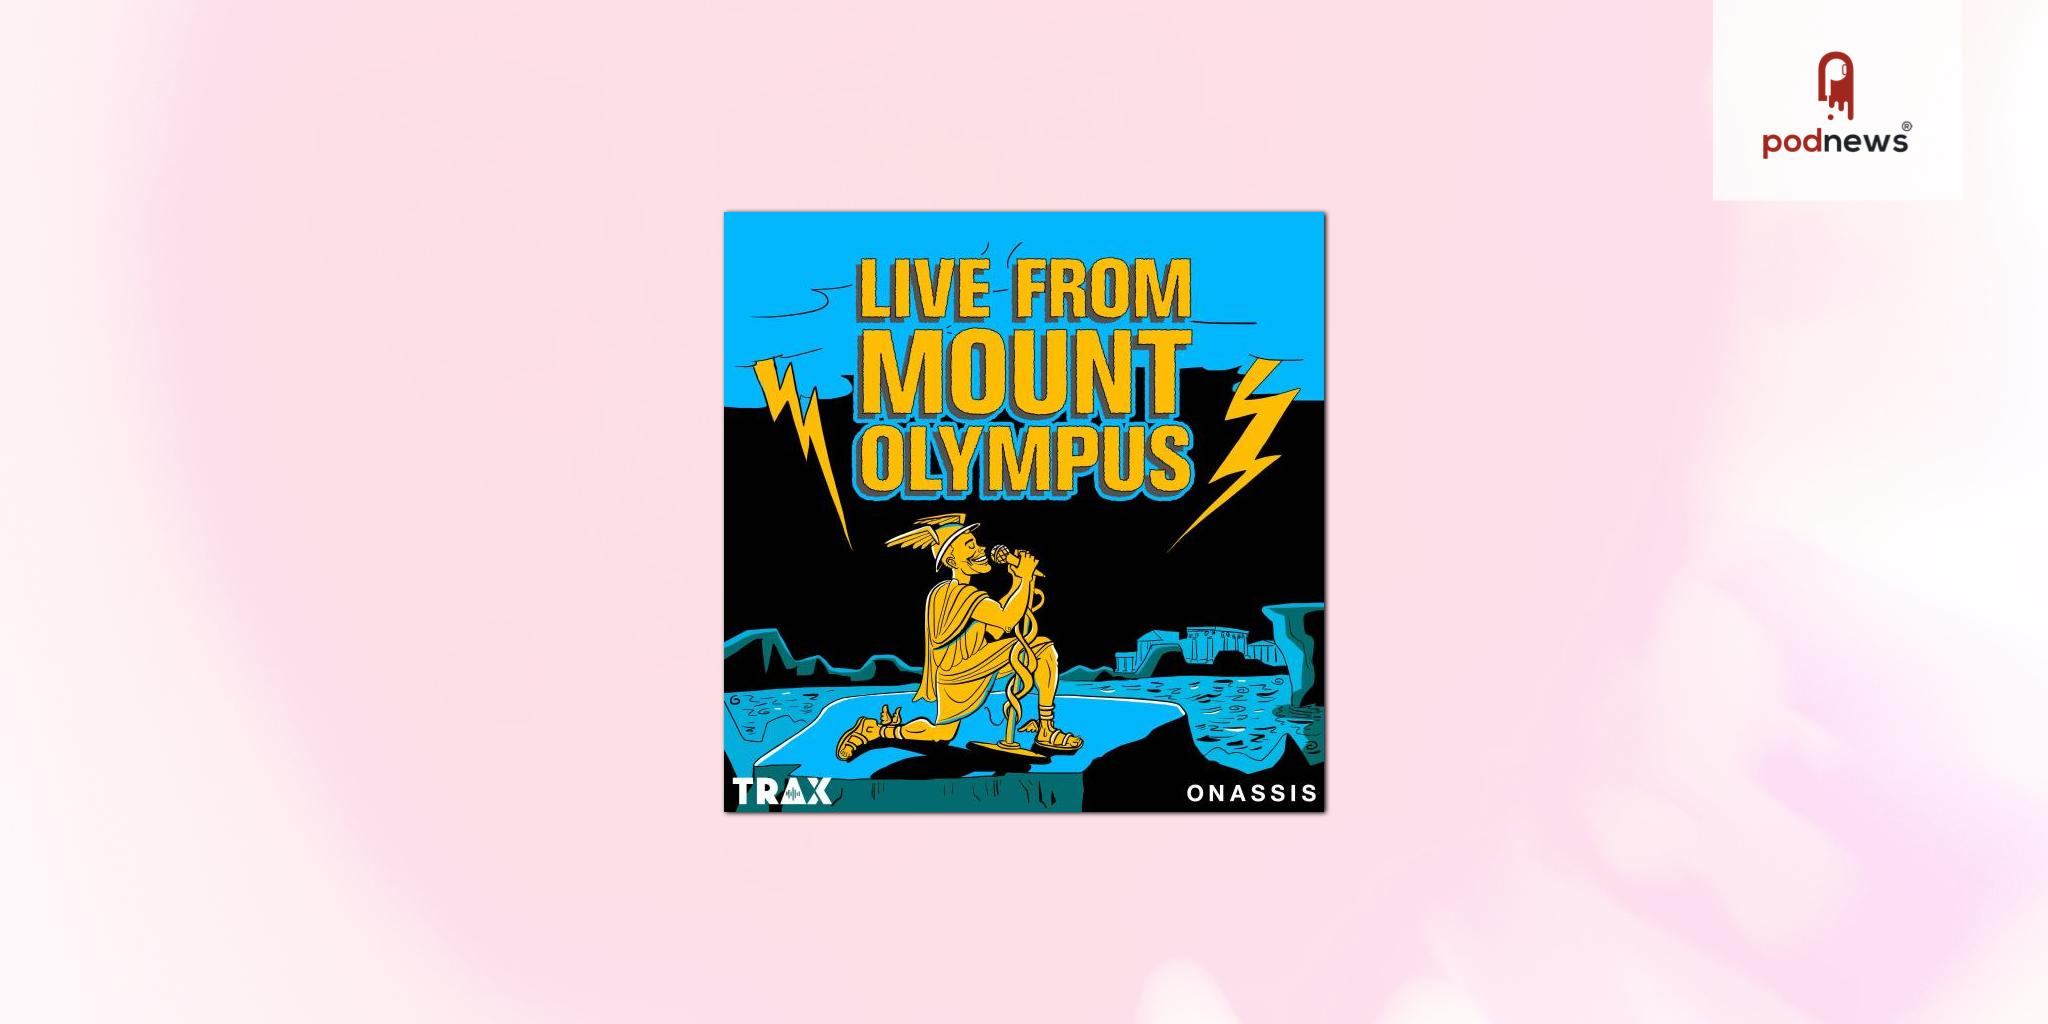 Live from Mount Olympus to make a return in 2022